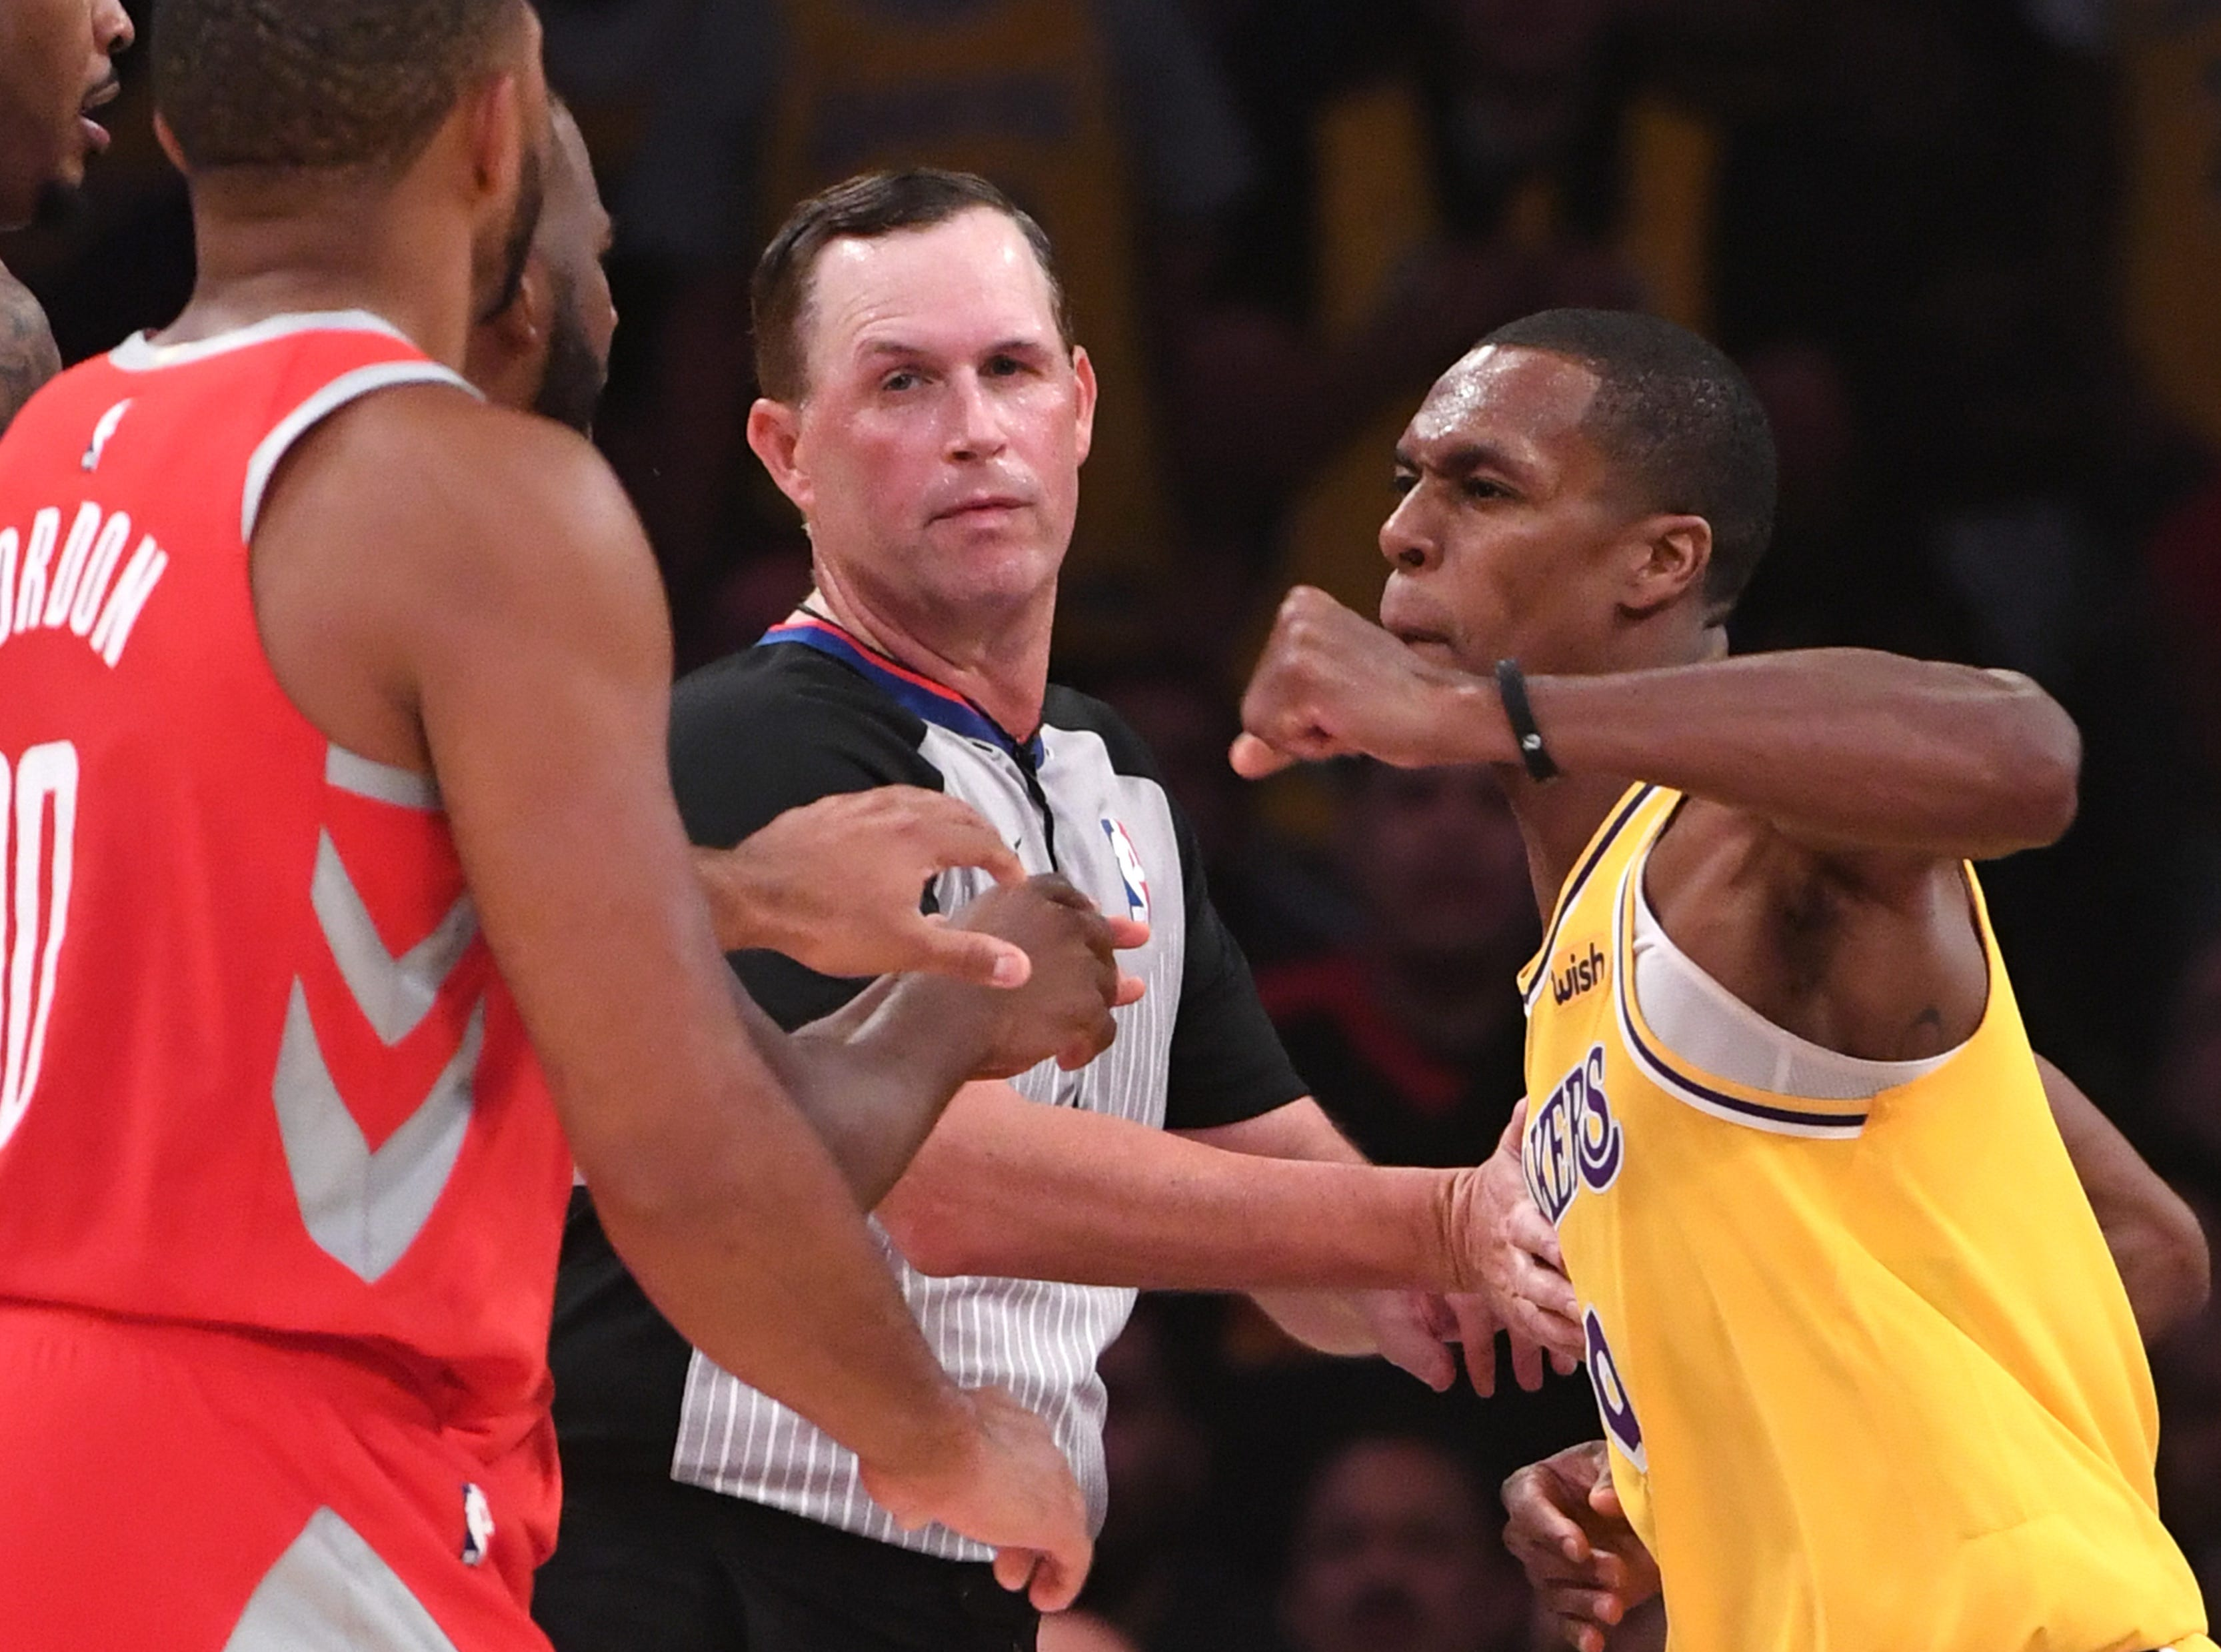 Oct. 20: Los Angeles Lakers guard Rajon Rondo (9) throws a punch at Houston Rockets guard Chris Paul during a fight in the fourth quarter of the game at Staples Center.